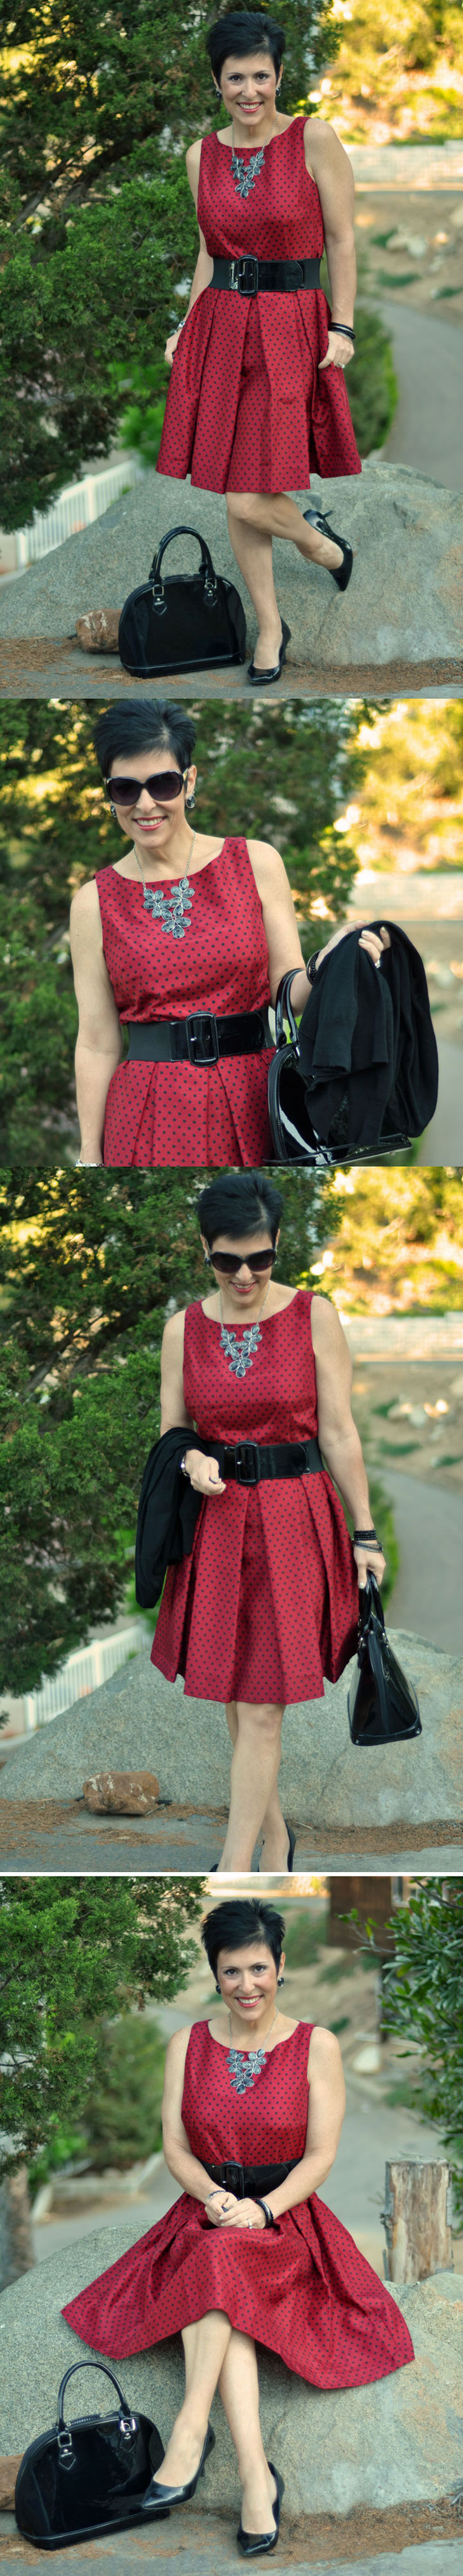 Red-with-Black-Polka-Dots